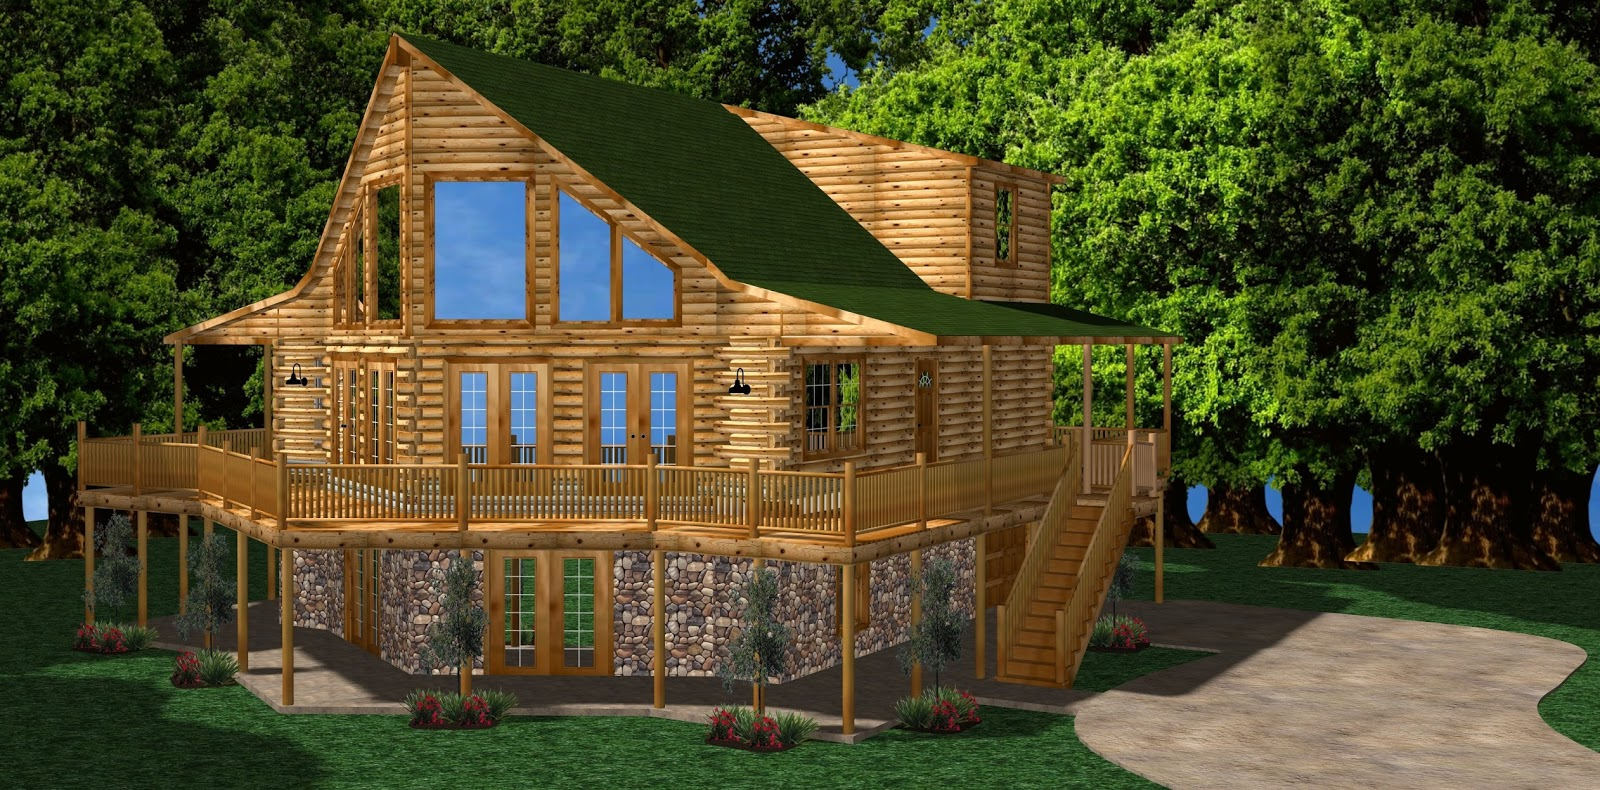 Introducing The 2098 Sq Ft Bent Creek Log Cabin Kit It Has 2 Bedrooms 25 Baths Great Room Kitchen Dining 1 Story Open Floor Plan And Porch